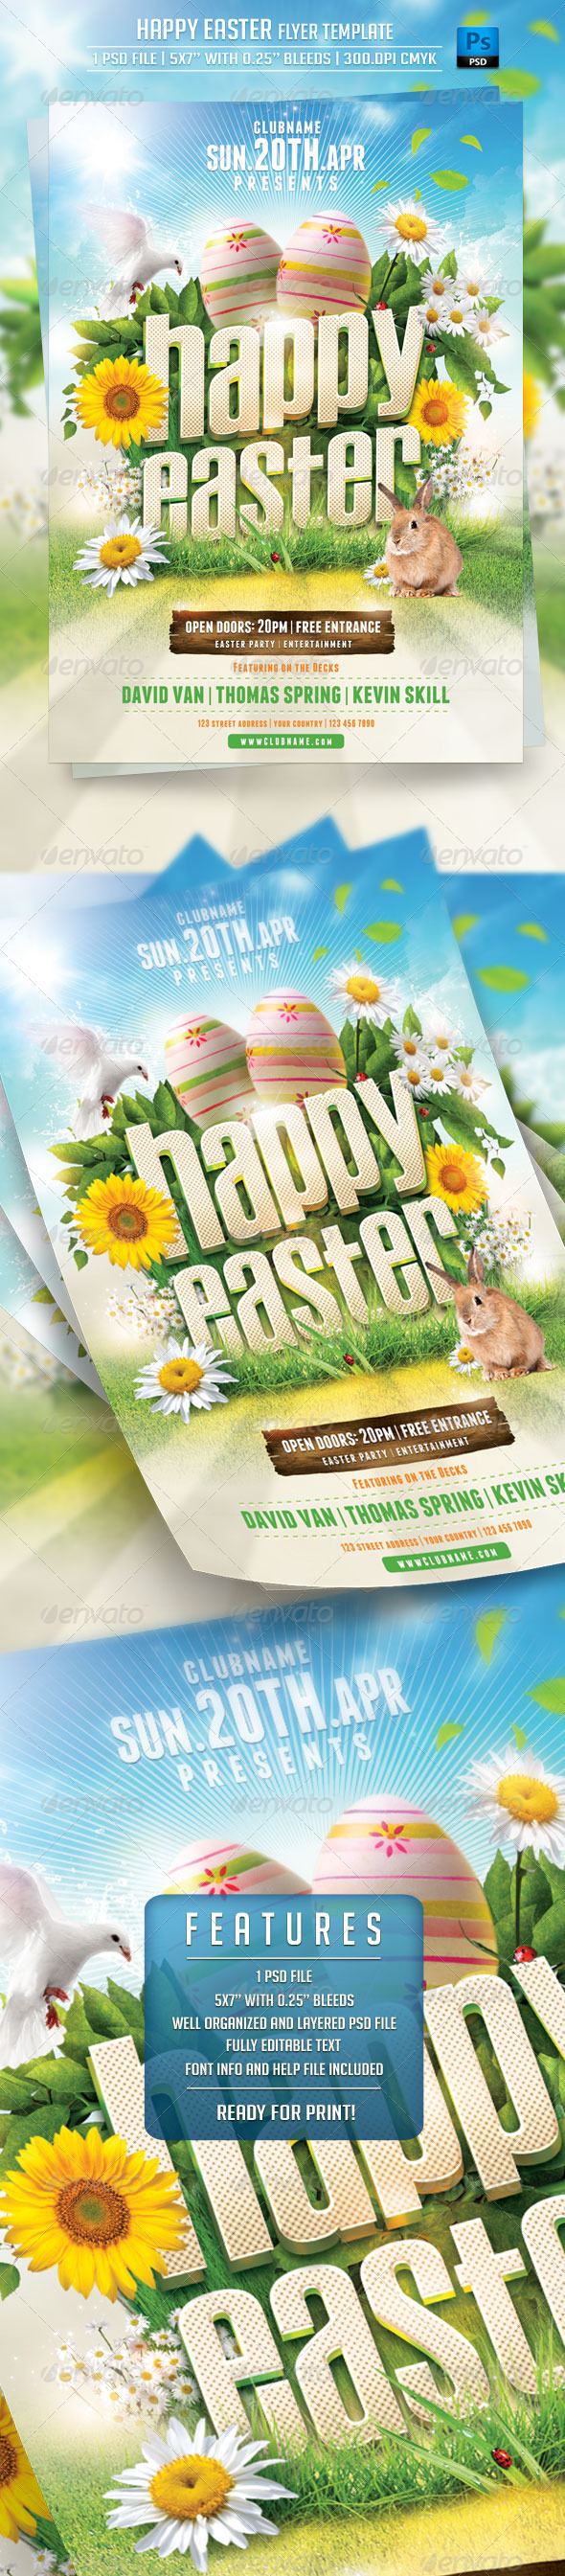 Happy Easter Flyer Template - Holidays Events